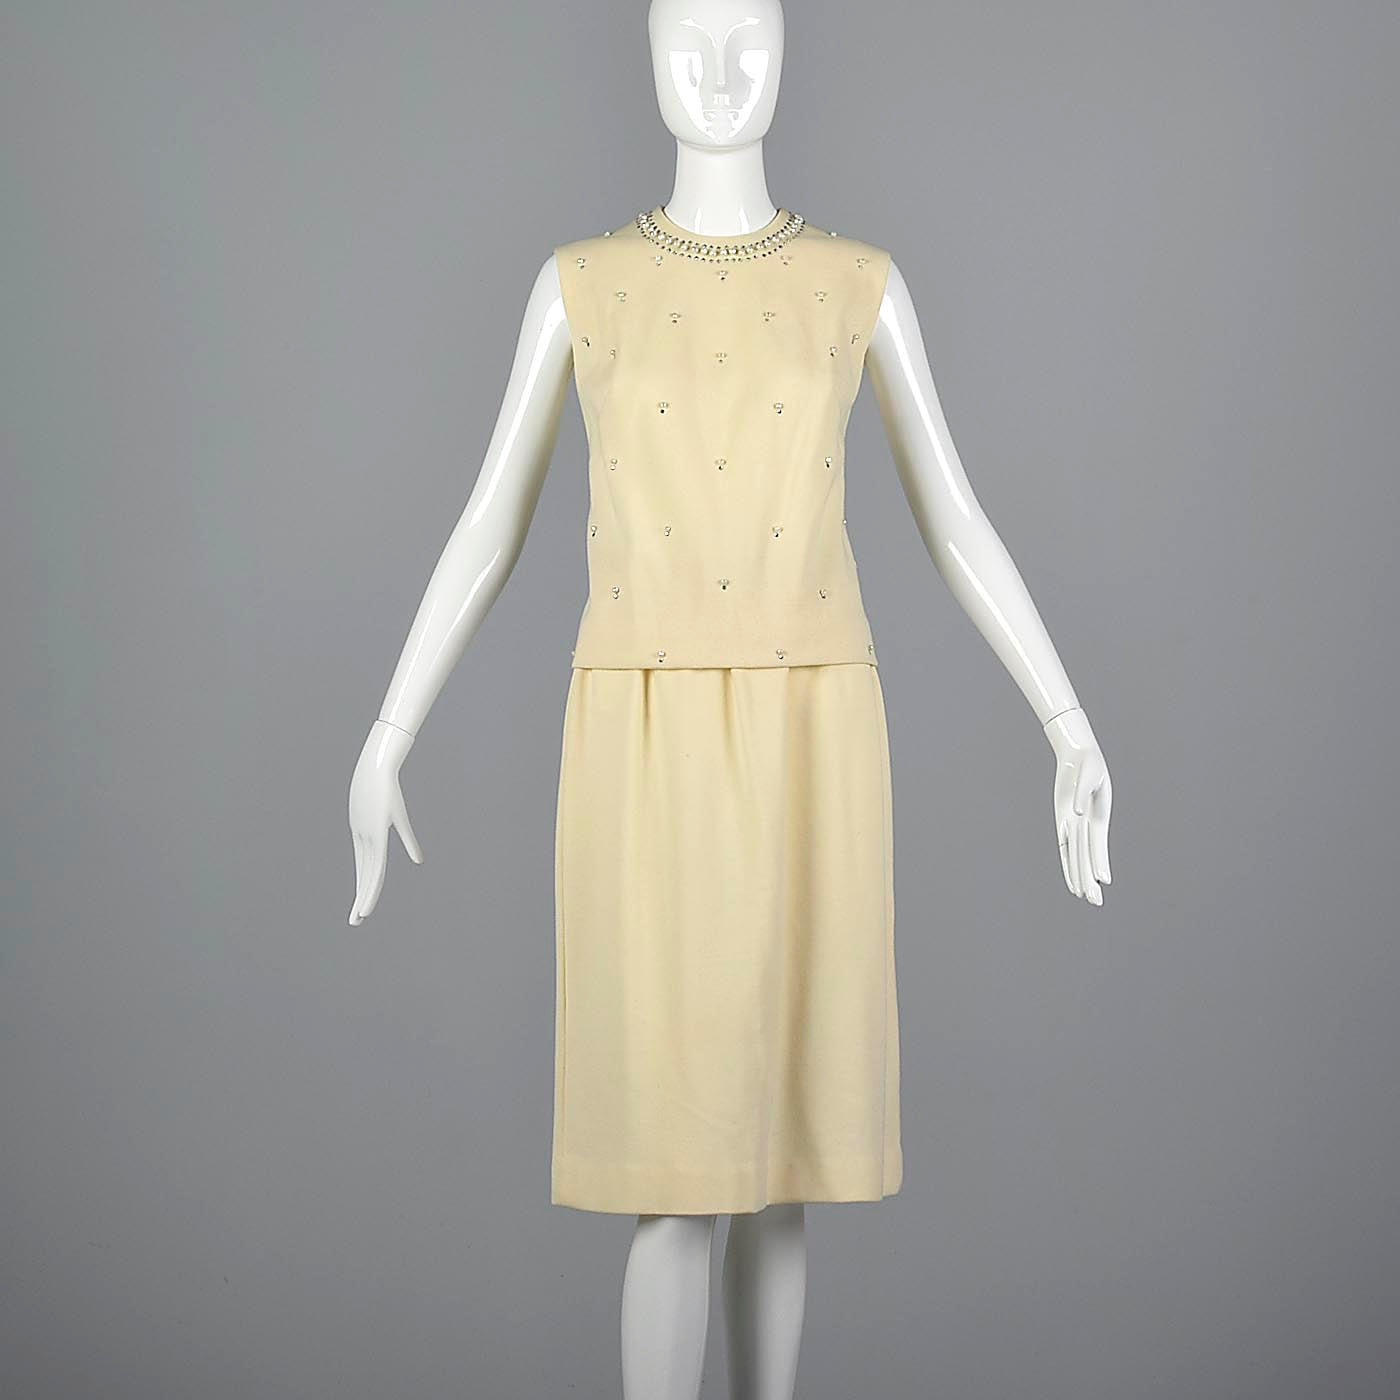 1960s Two Piece Cream Knit Set with Rhinestone Details